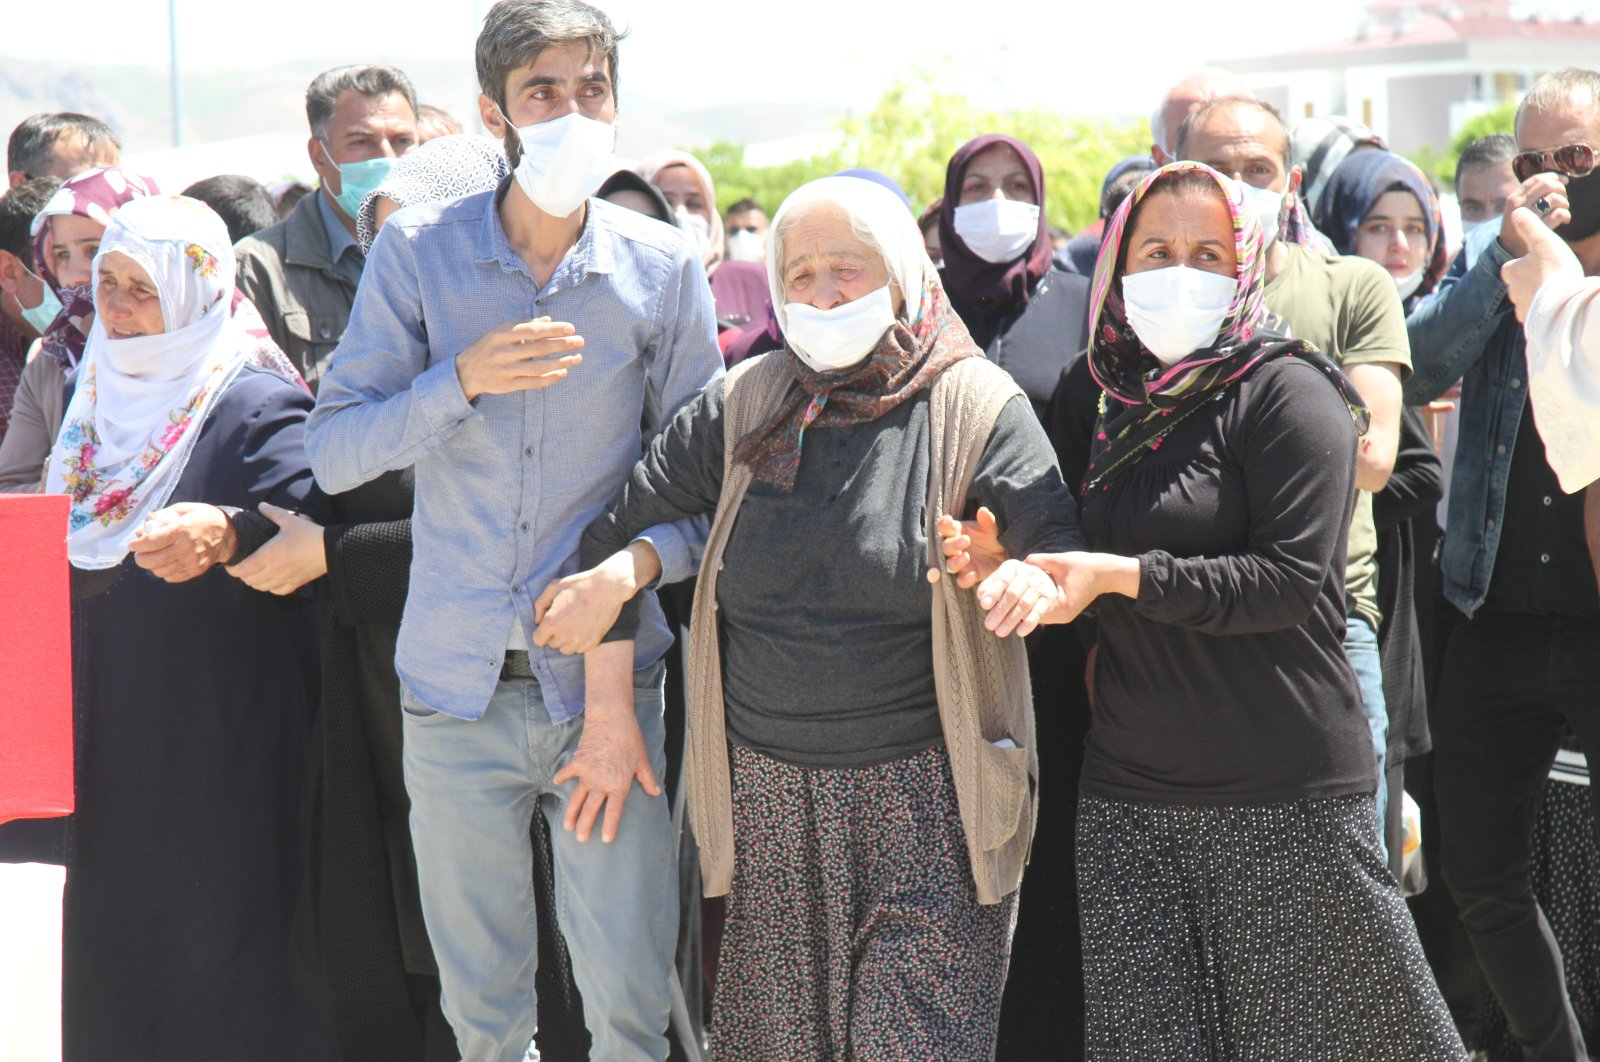 People mourn in a funeral ceremony organized for the victims of a PKK attack in eastern Van province, June 9, 2020. (SABAH)